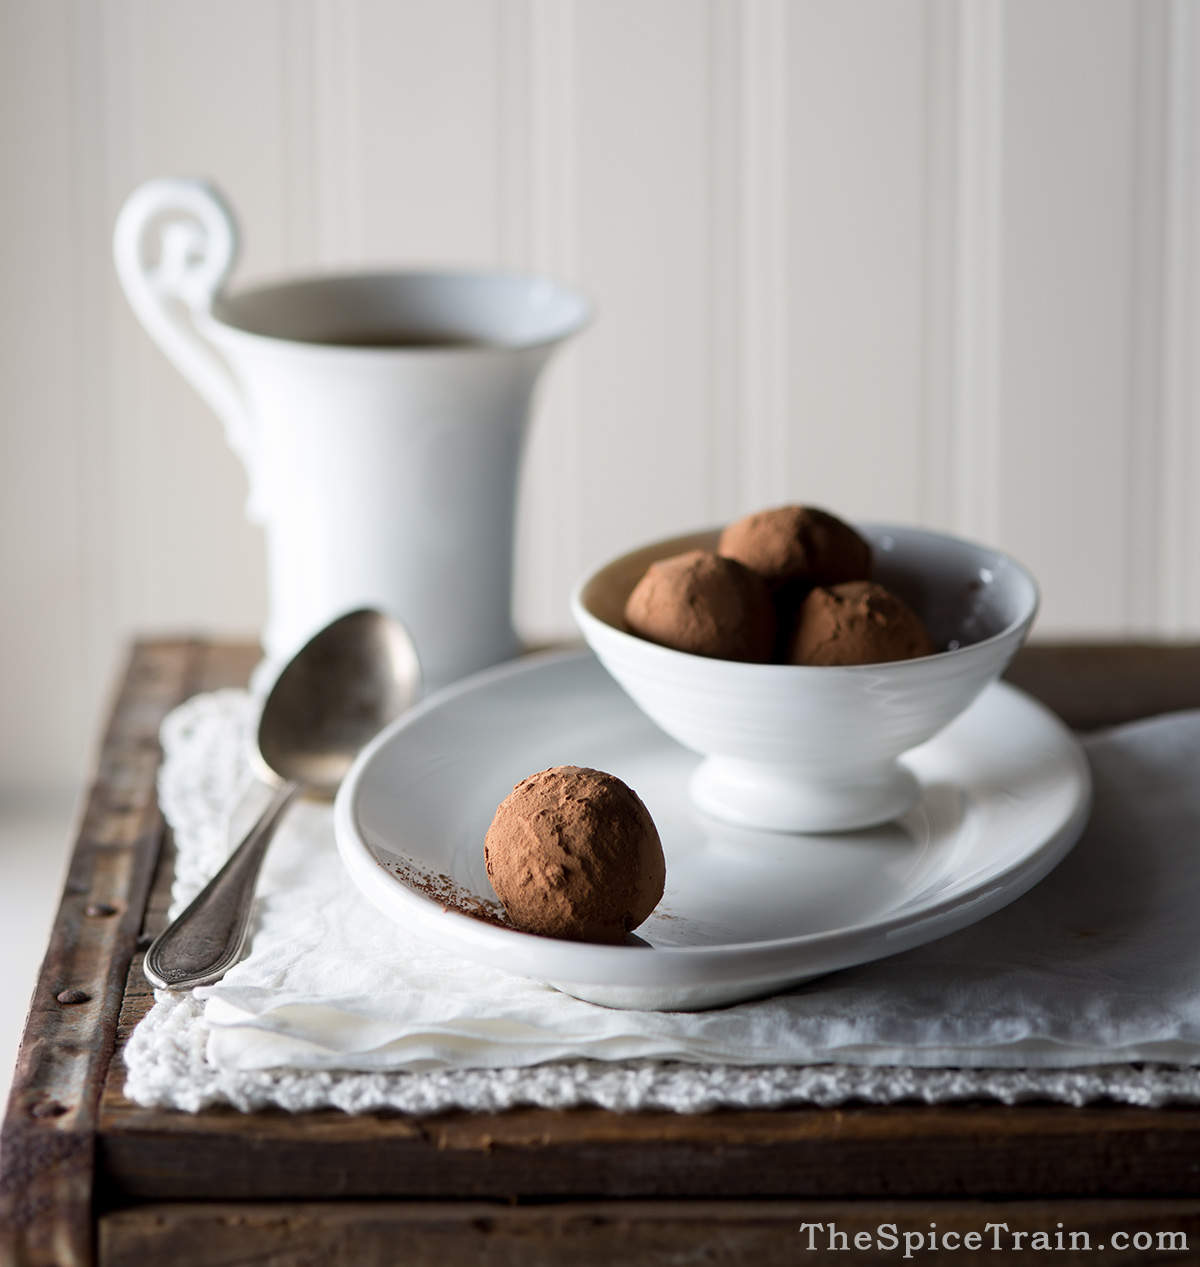 Chocolate truffles rolled in cocoa powder and a cup of coffee.